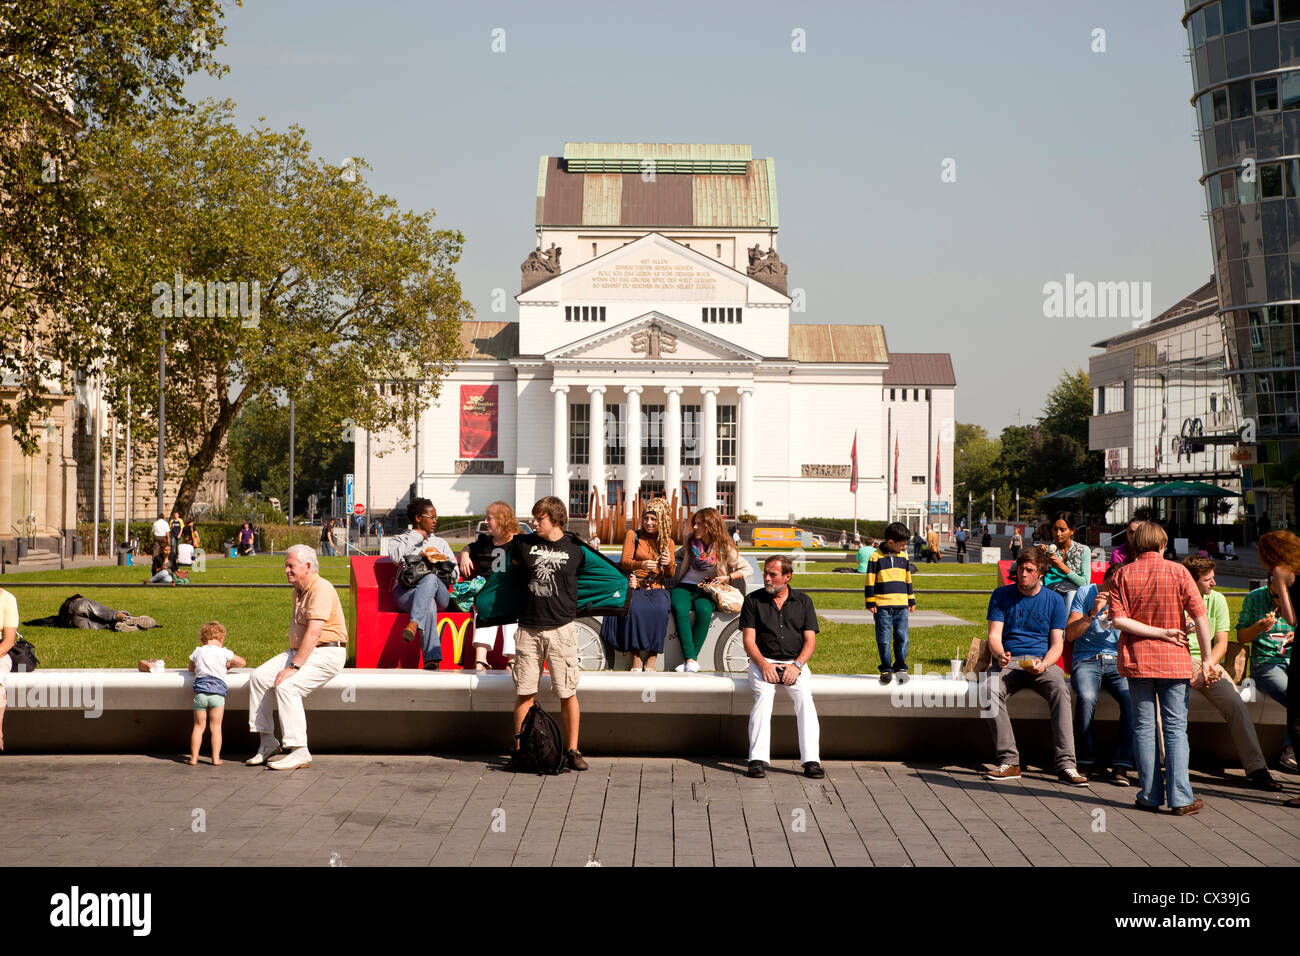 square König-Heinrich-Platz and the City Theater in Duisburg, North Rhine-Westphalia, Germany, Europe - Stock Image